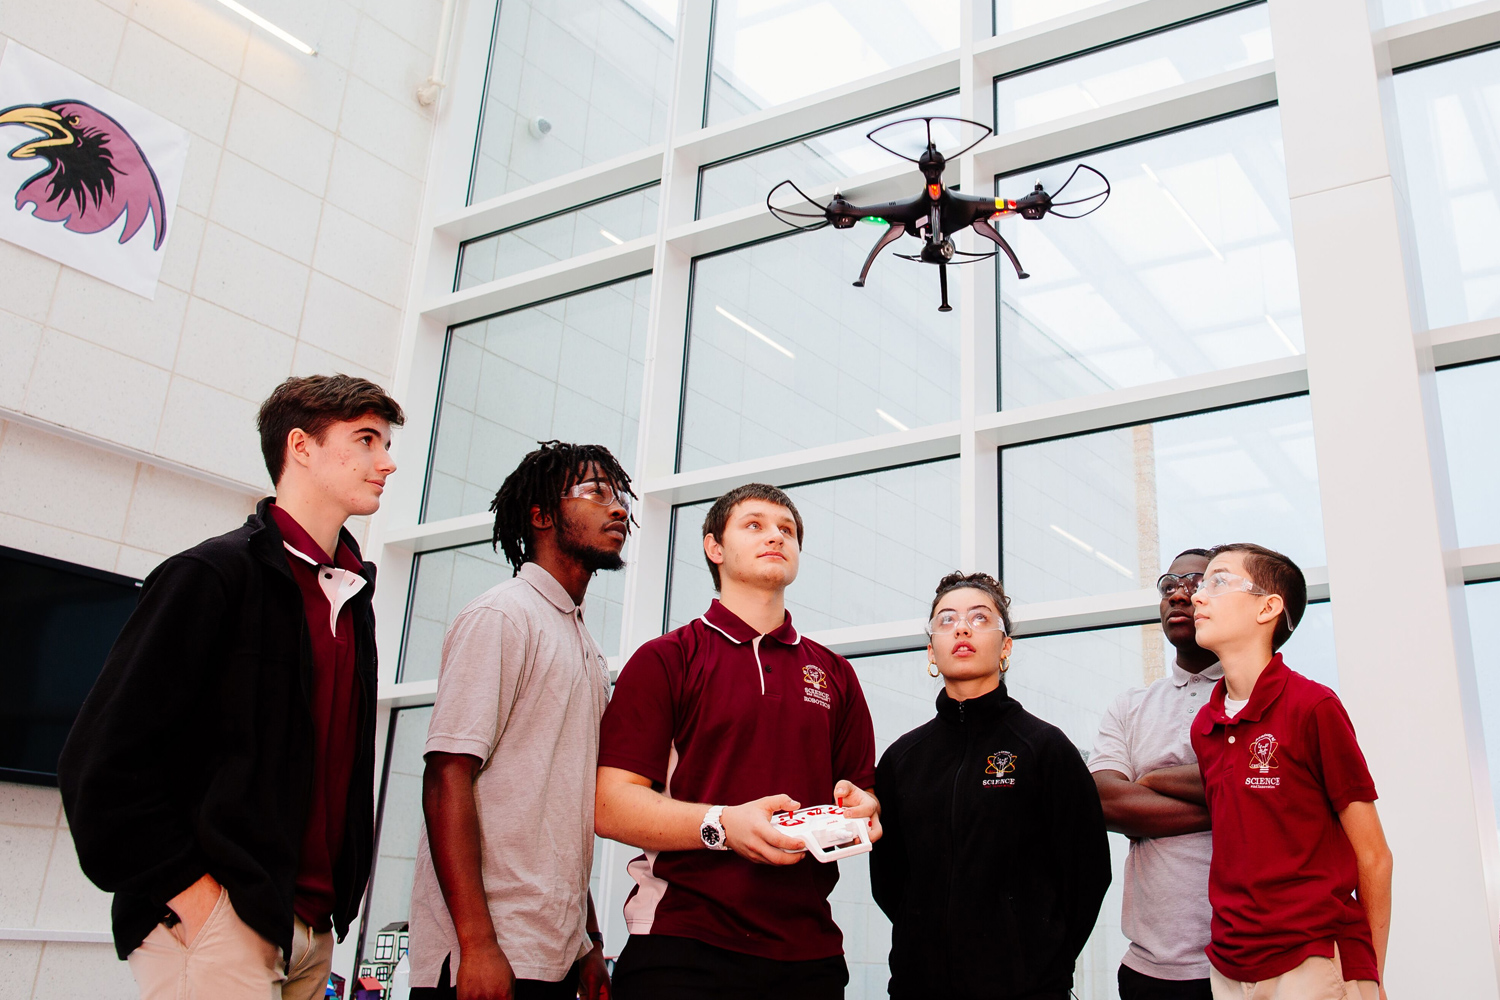 Hands-on Drone Work